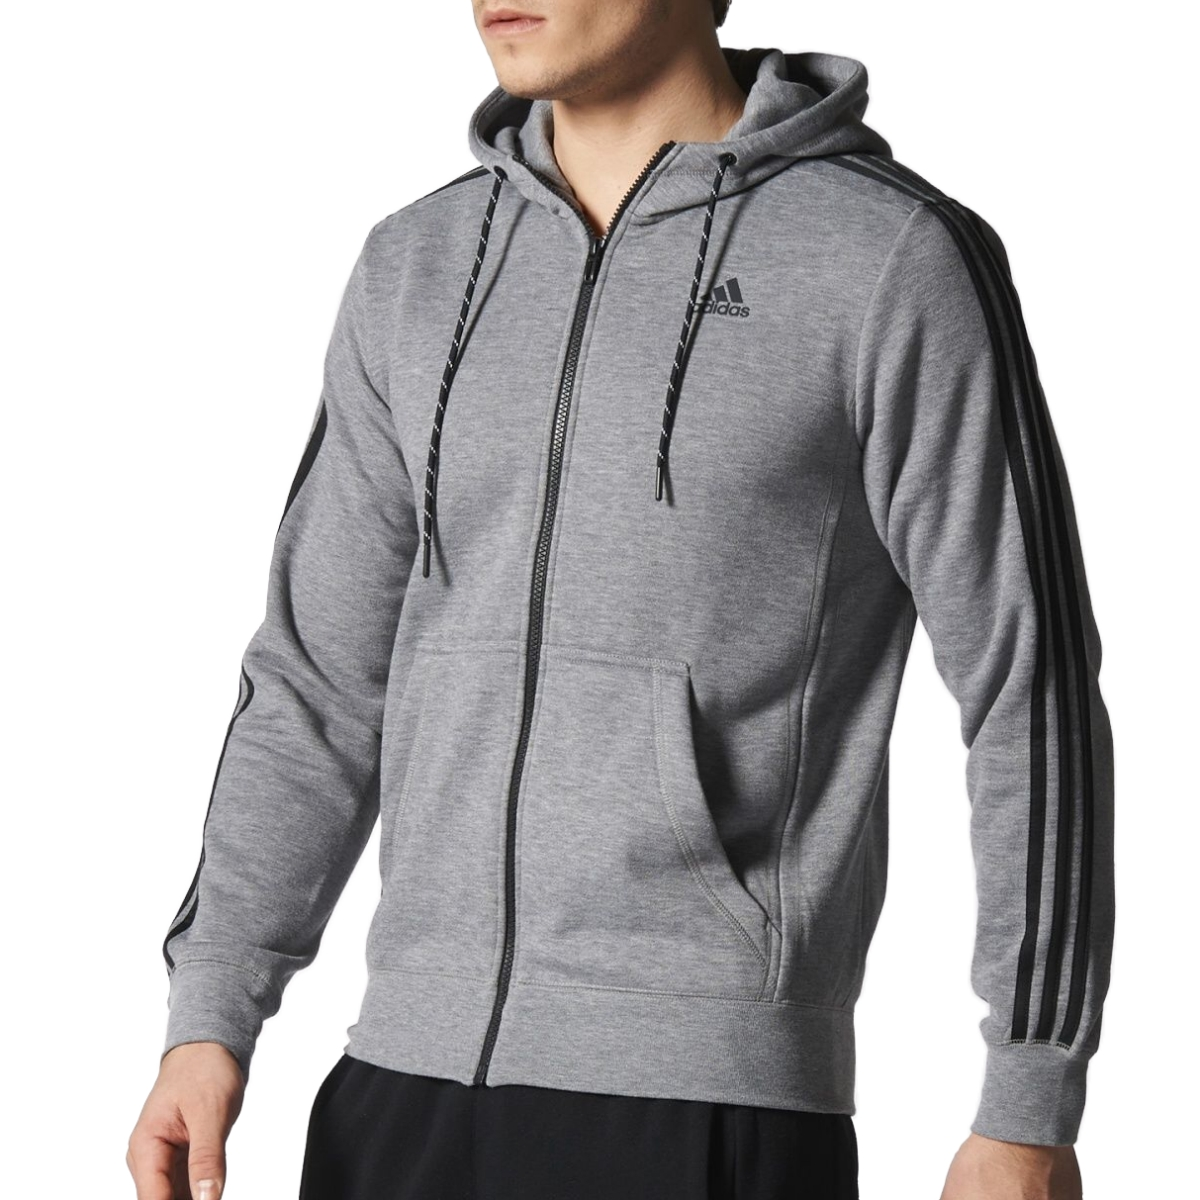 adidas essentials 3s hoodie jacke kapuzenjacke sweatjacke. Black Bedroom Furniture Sets. Home Design Ideas